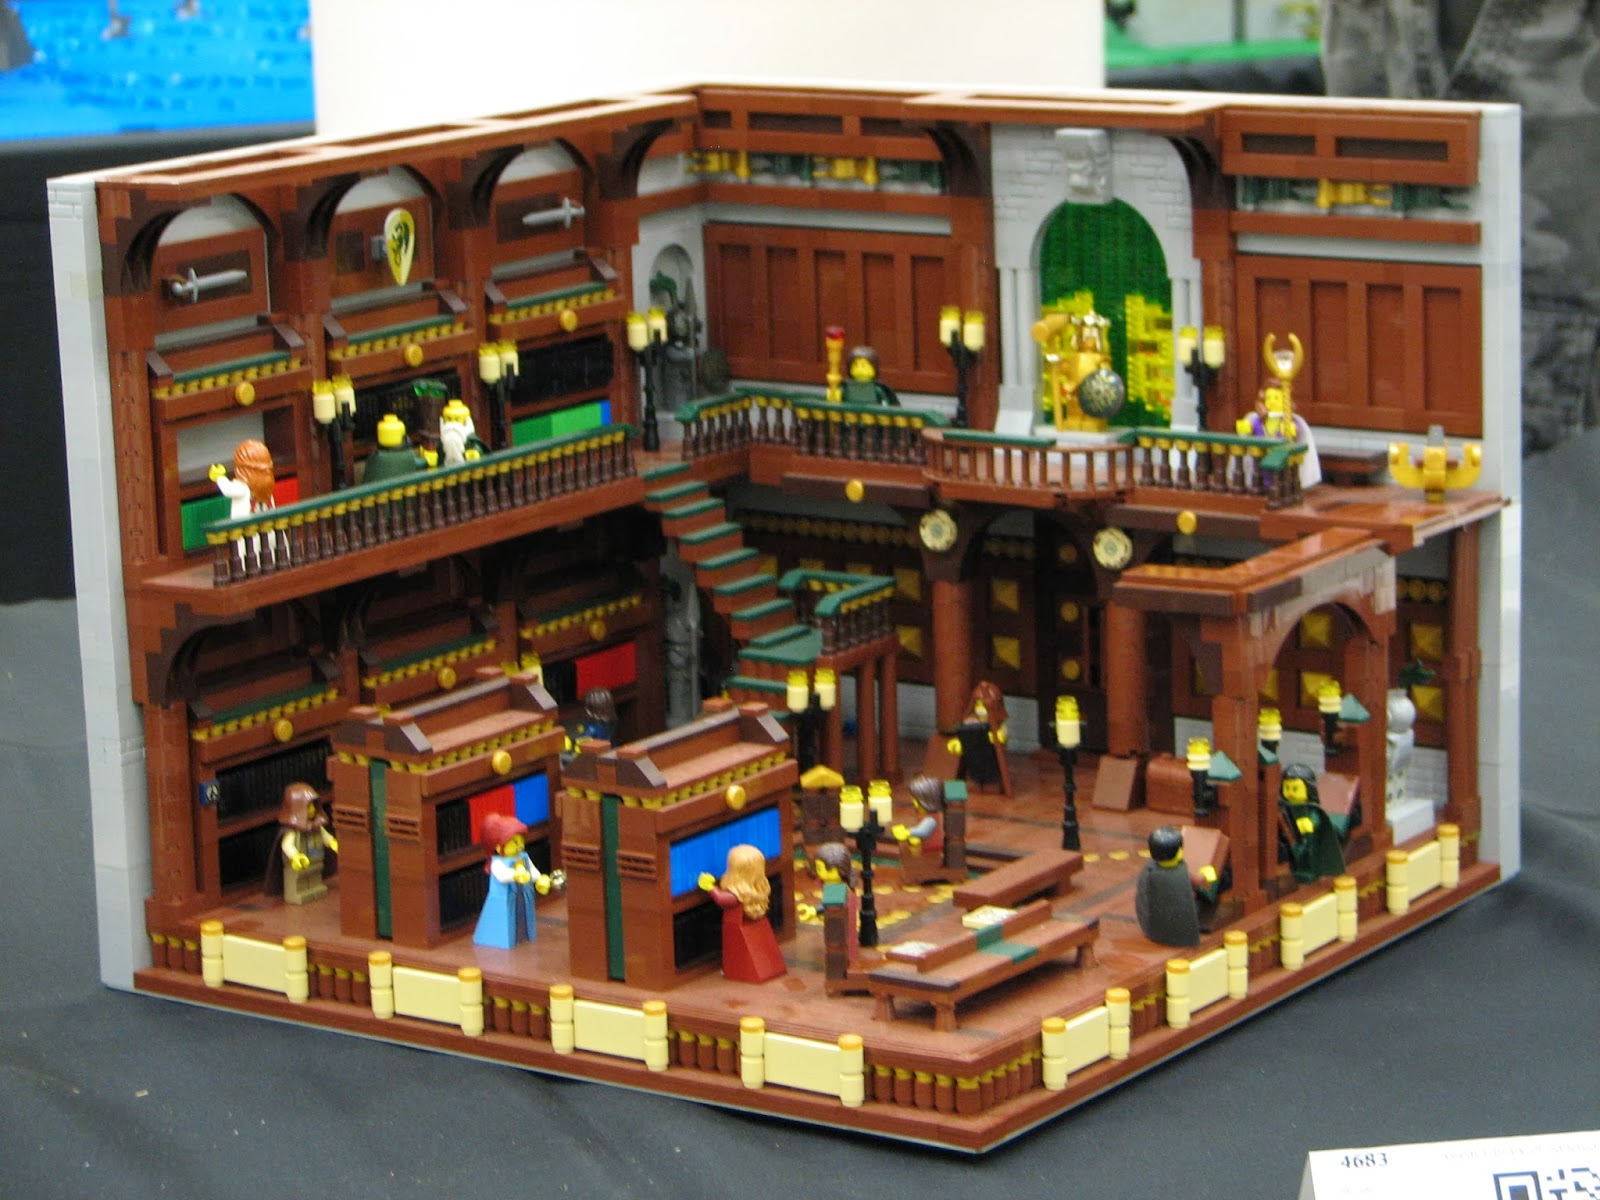 gen y er on the loose brickcon 2013 here is another set of gorgeous detailed building facades this time a pirate theme most excellent